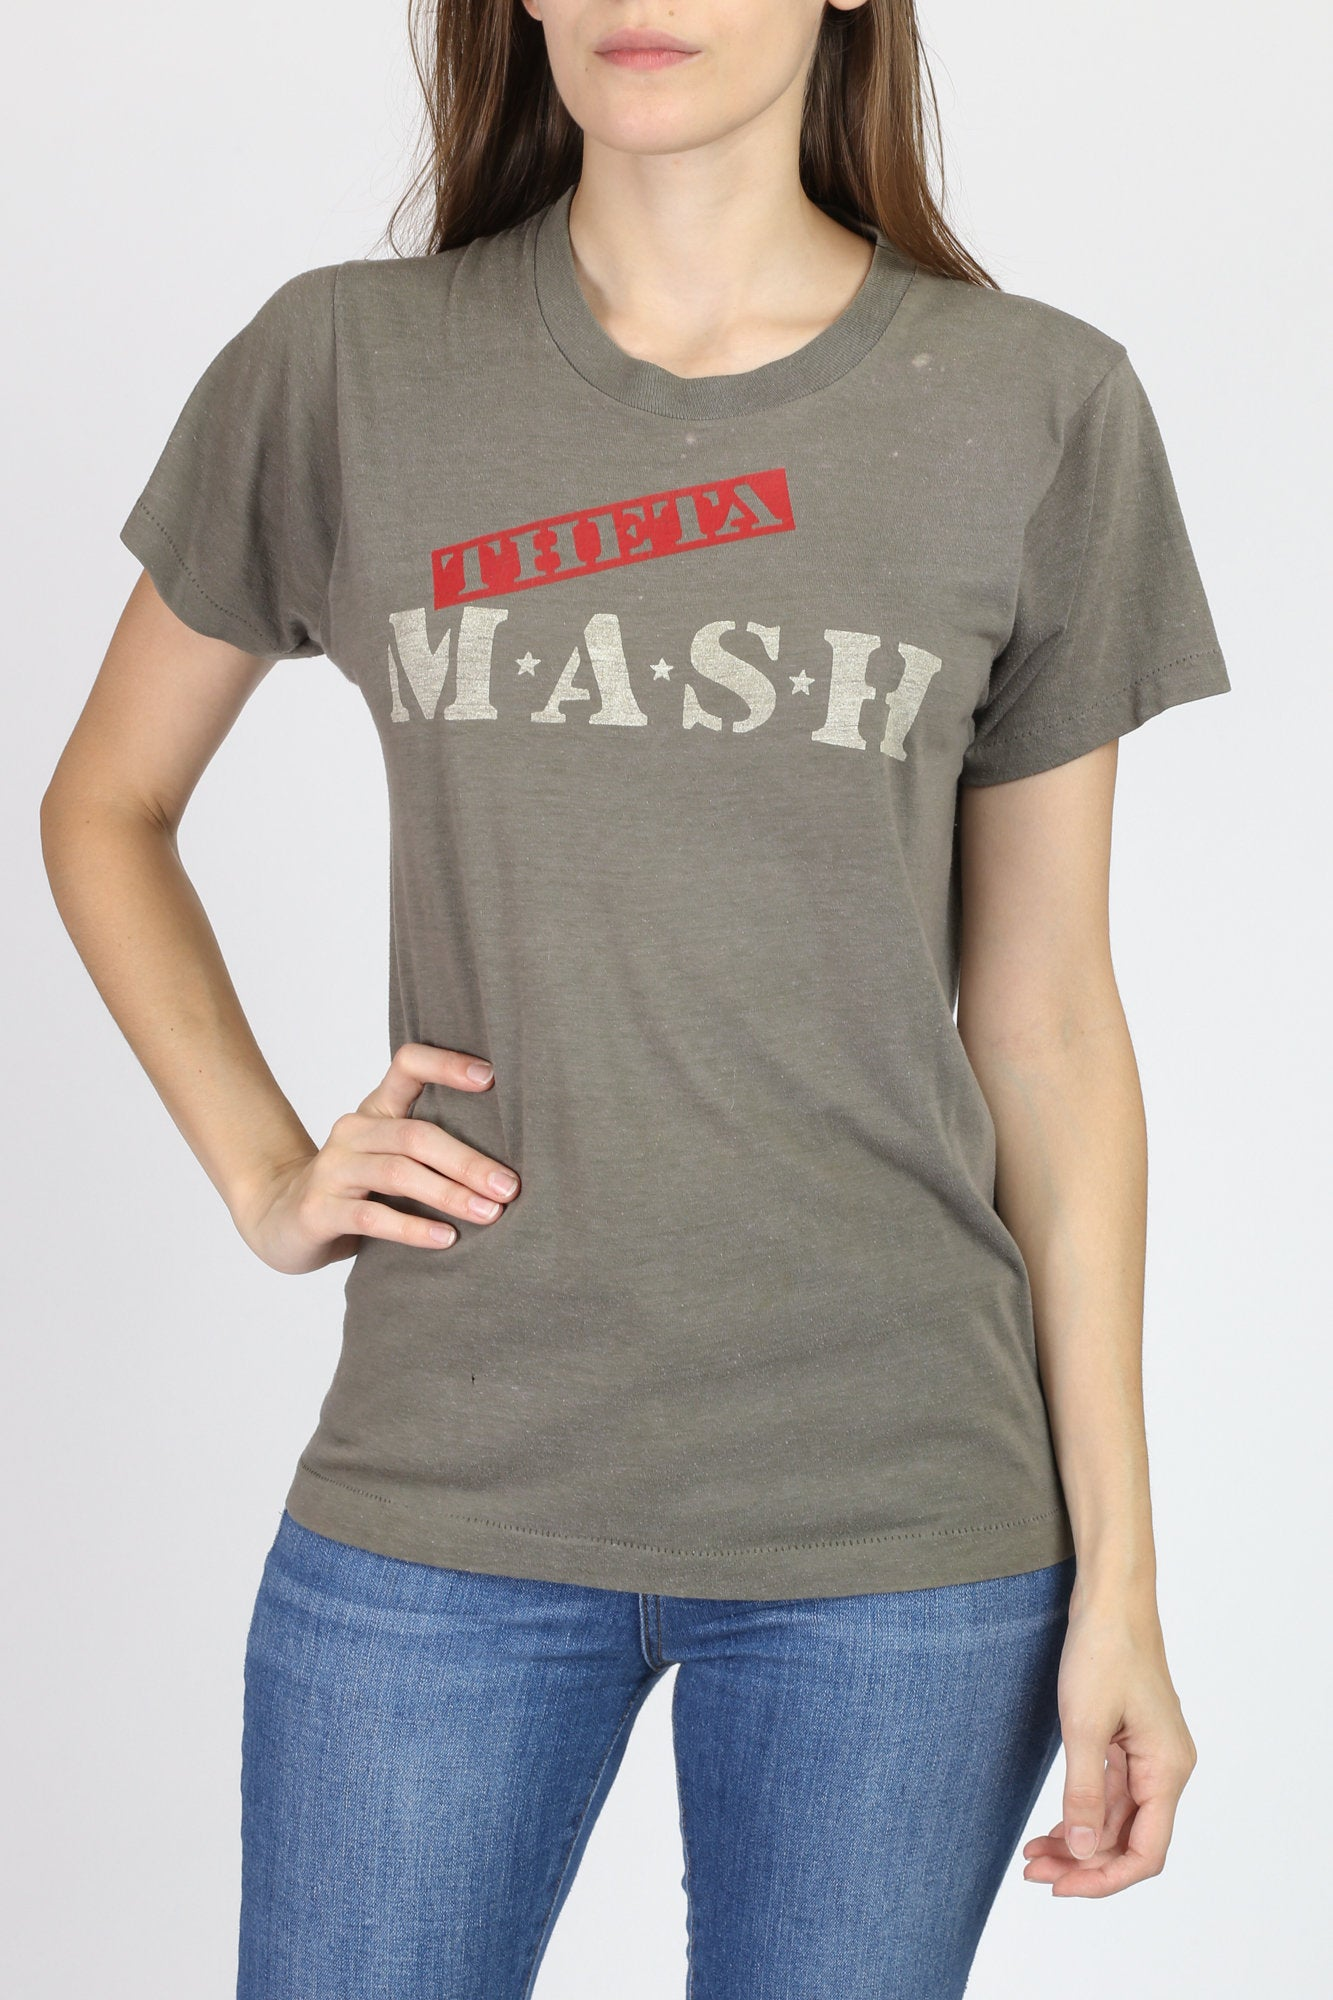 Vintage 80s MASH T Shirt - Small to Medium